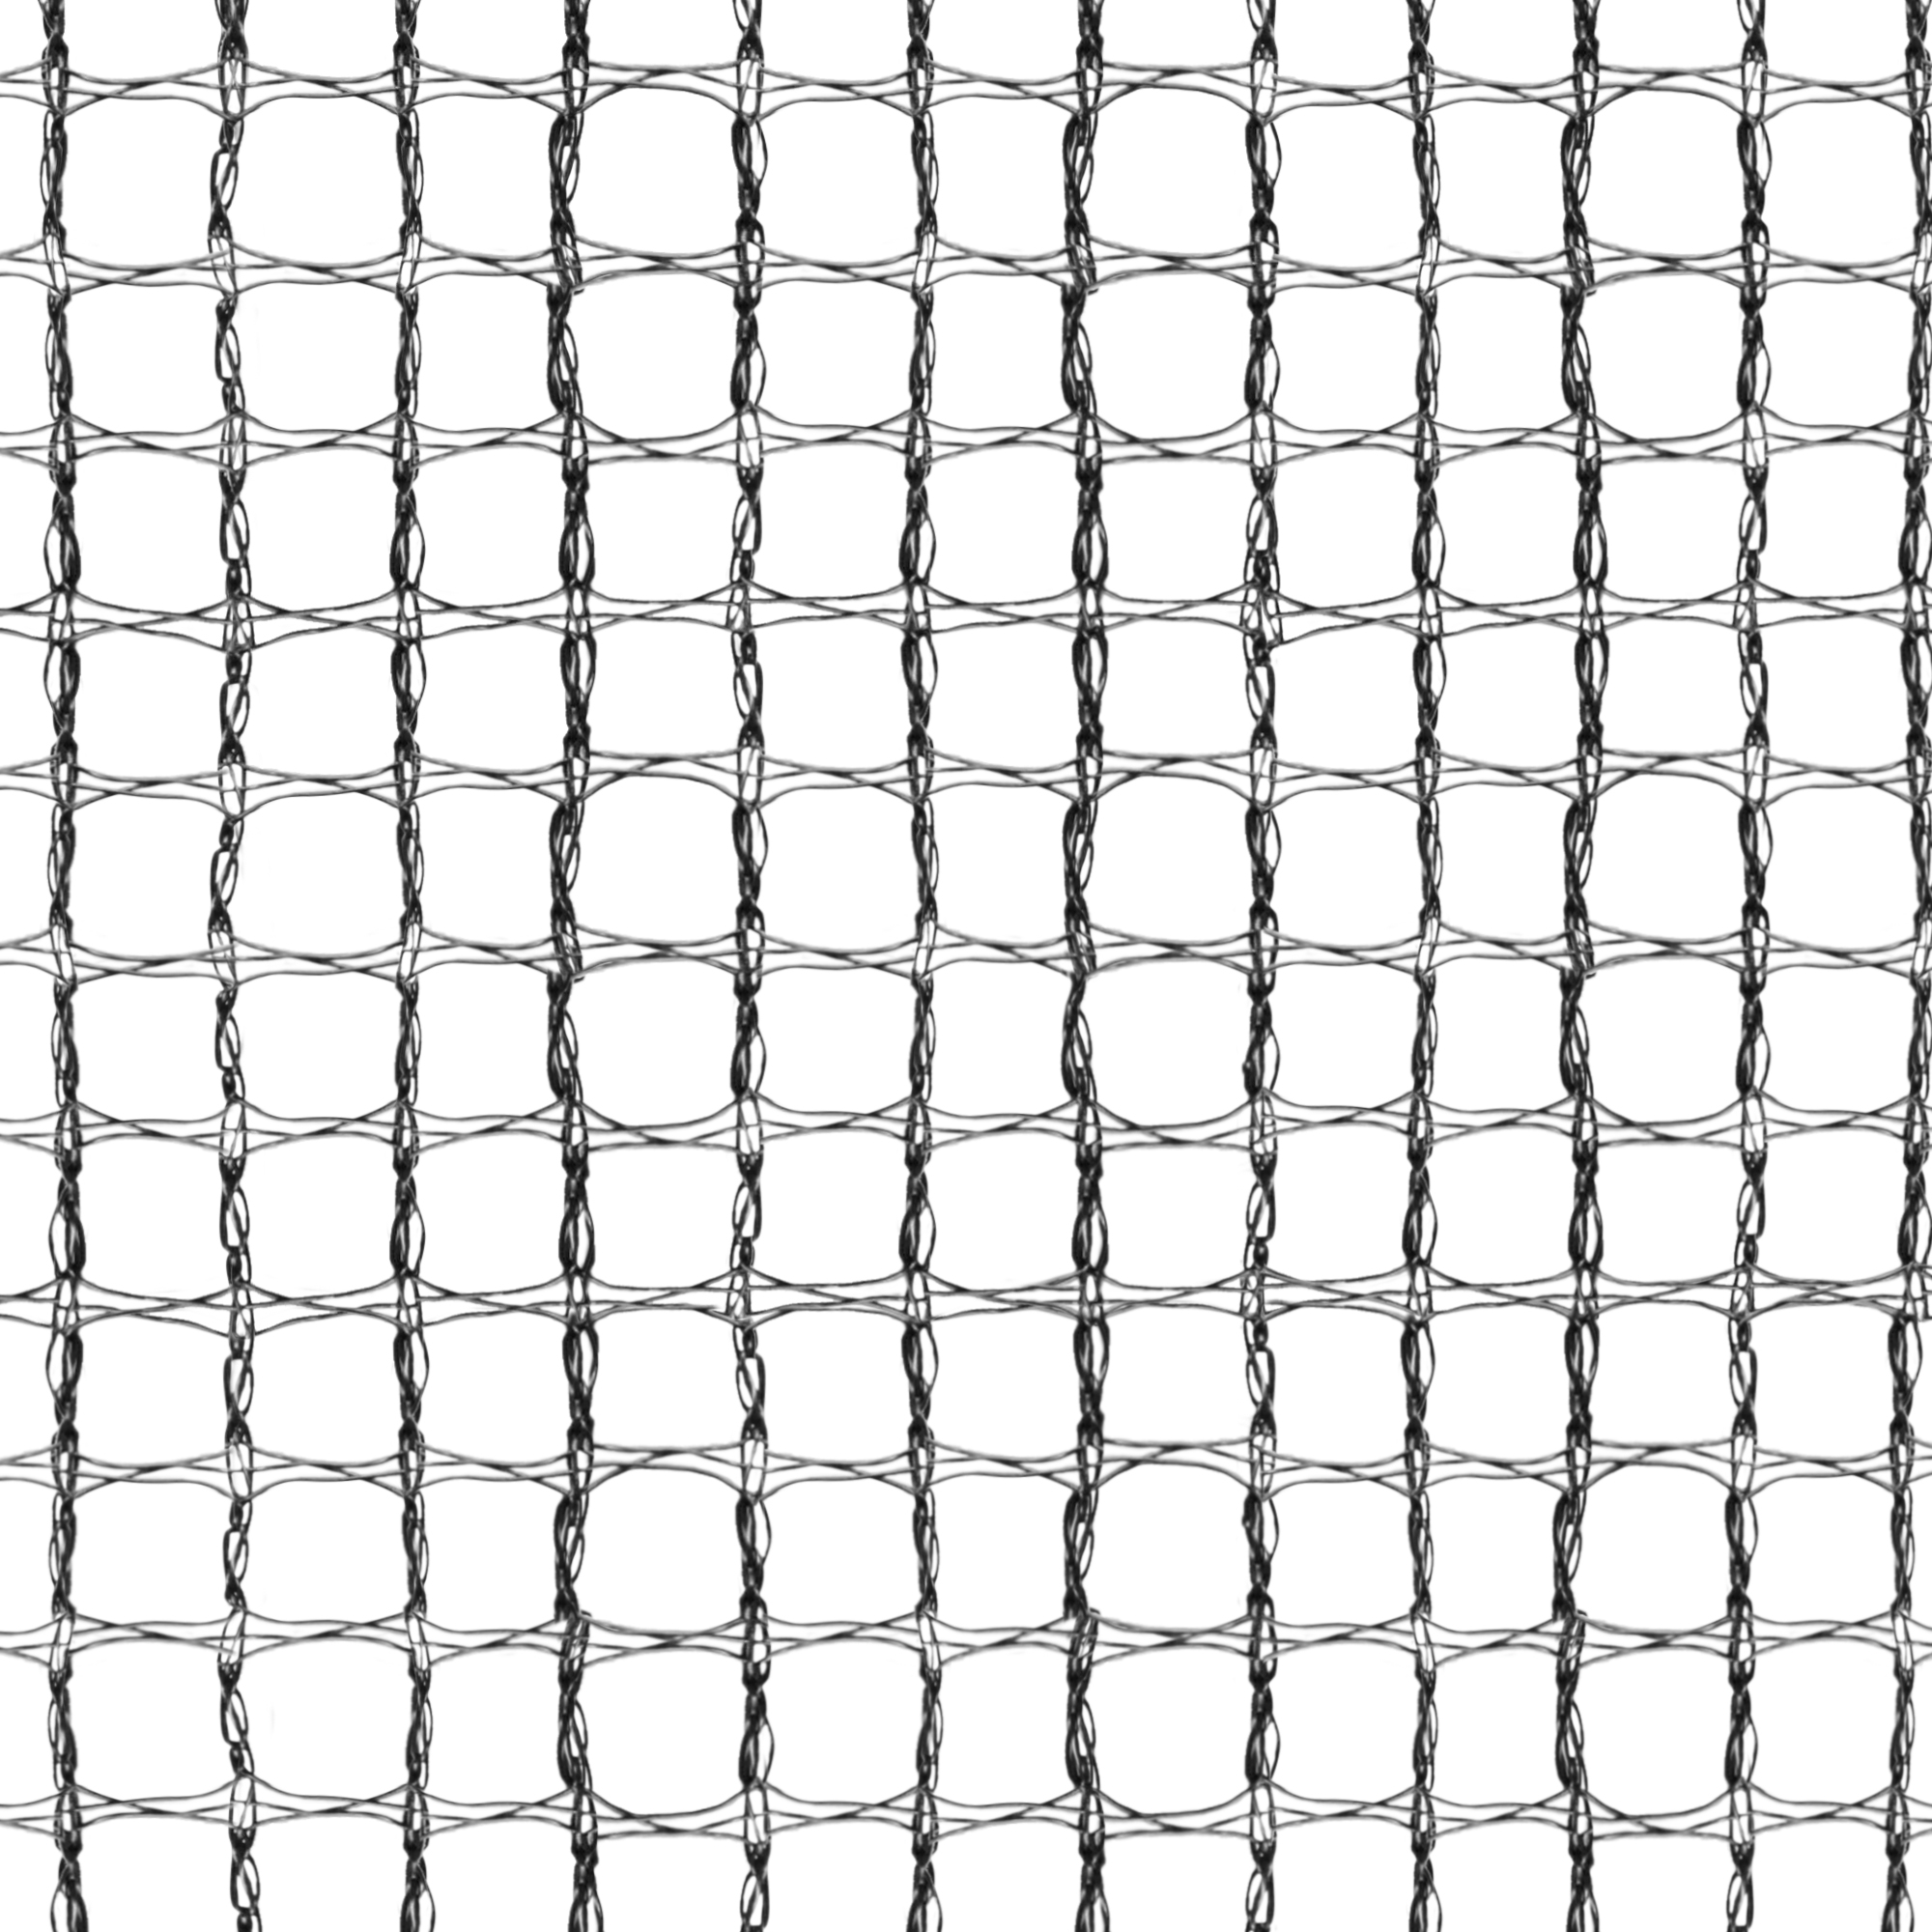 Butterfly_Netting_Soft_Mesh